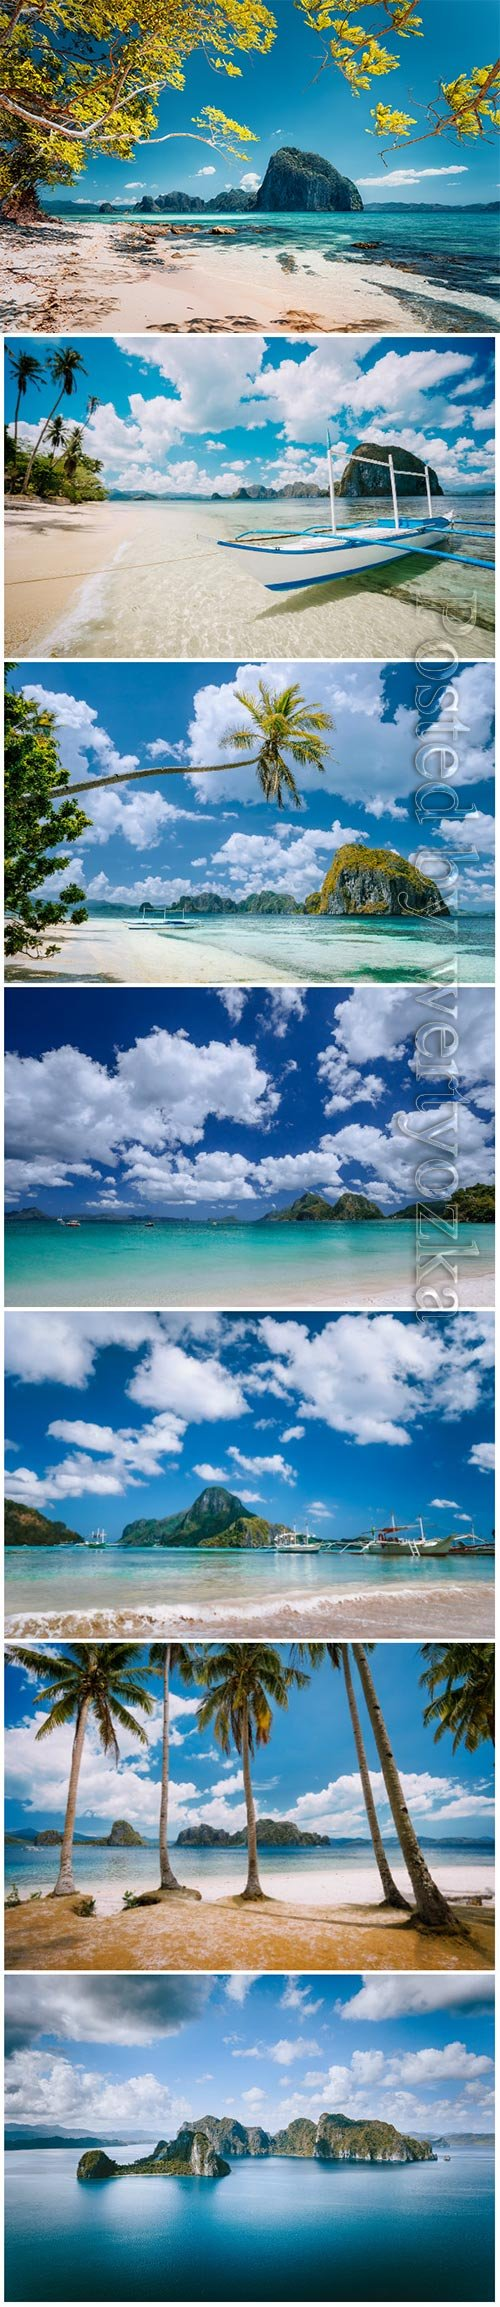 Beautiful landscape beach paradise